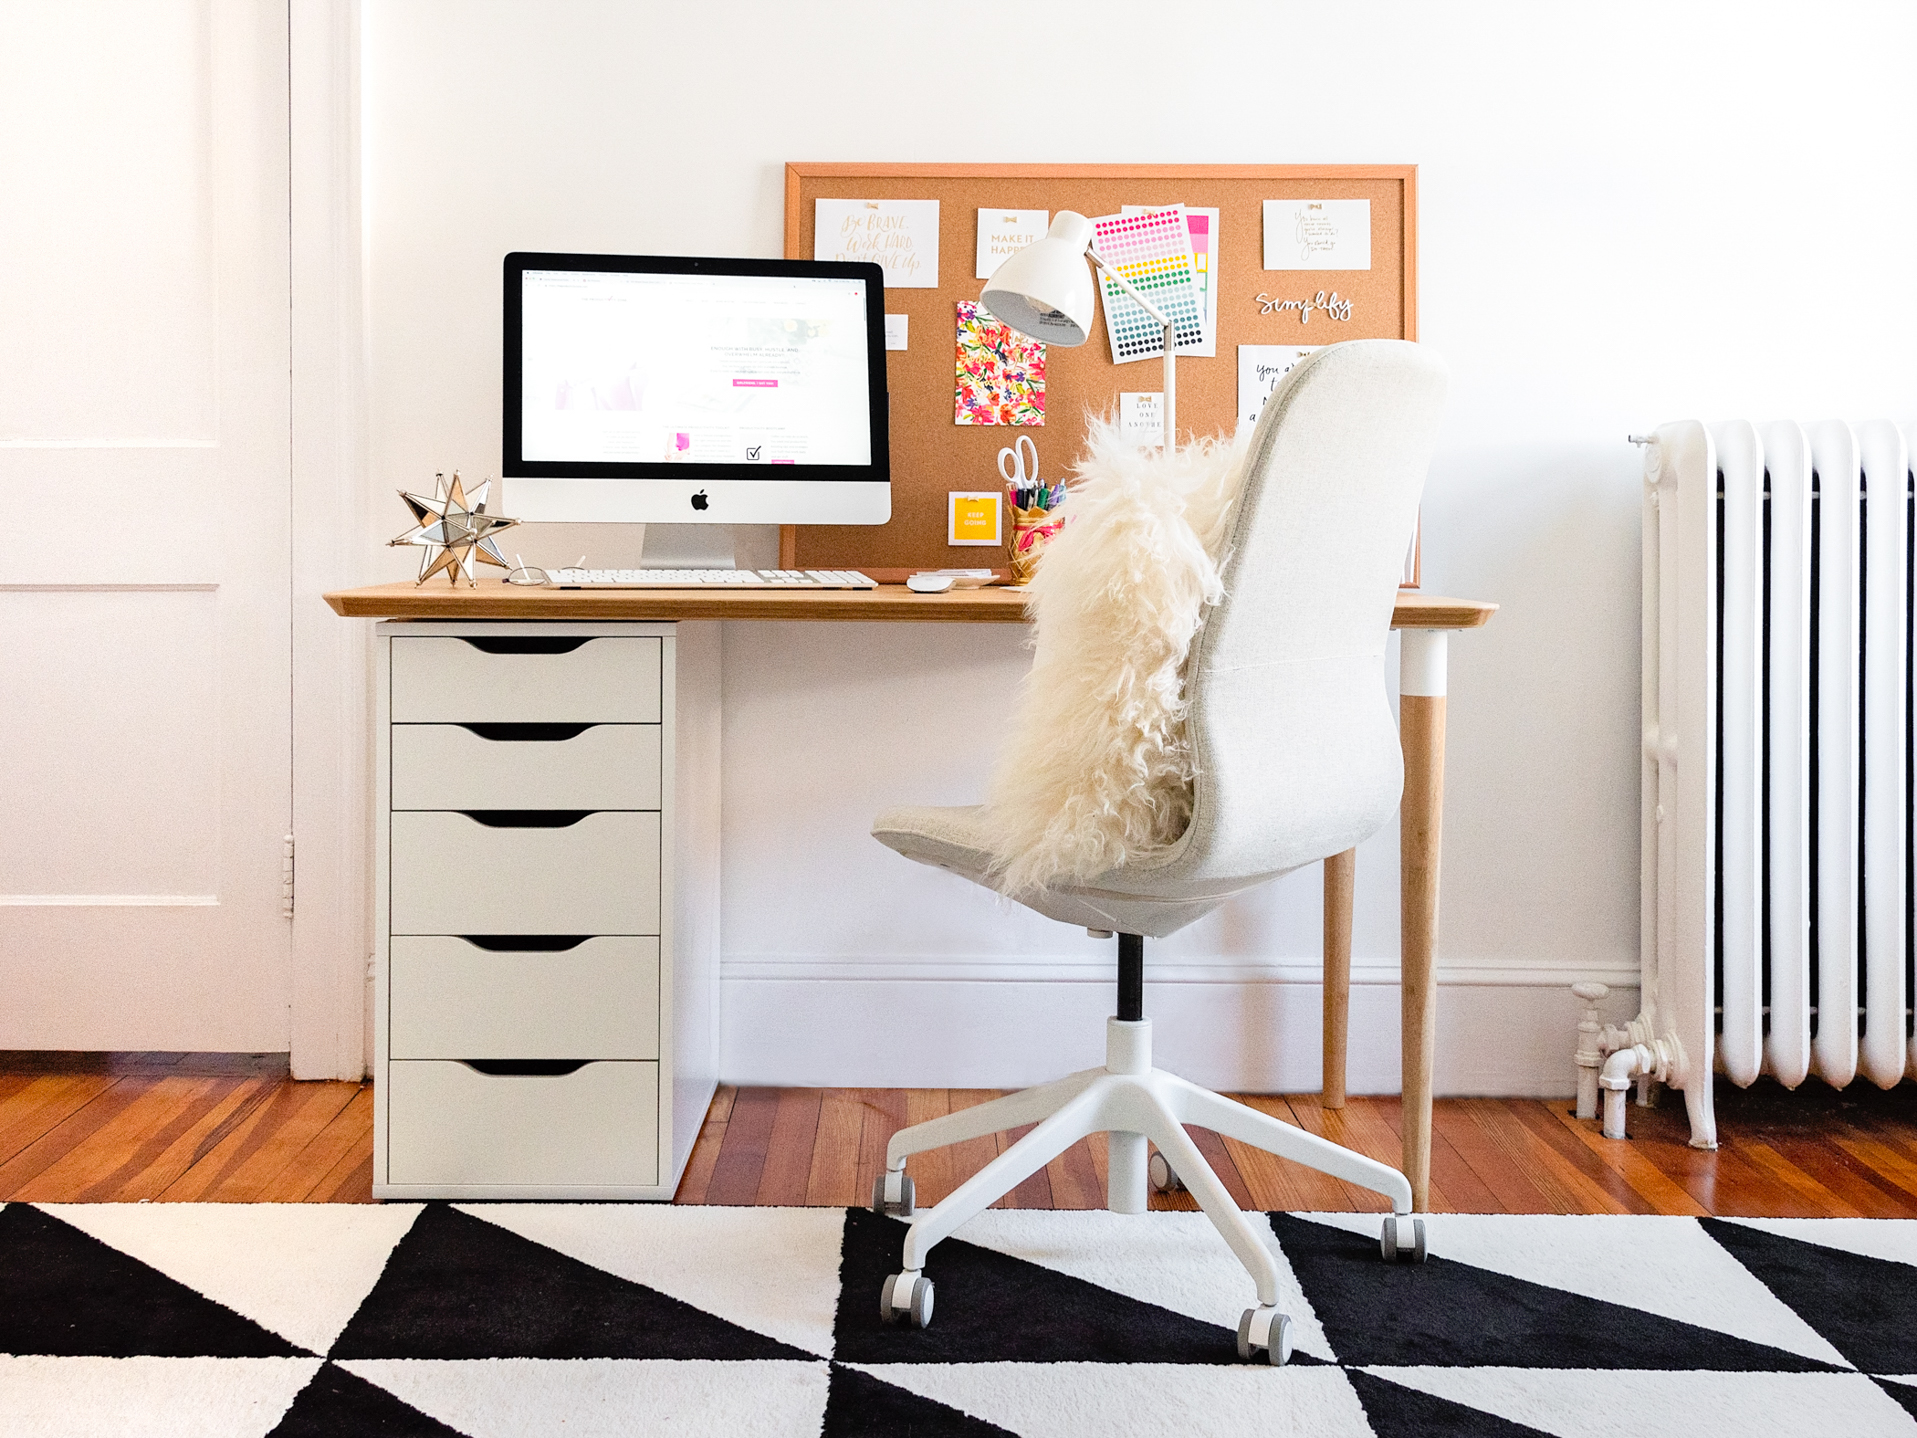 home office photographed as part of a brand shoot for the productivity zone by jamie bannon photography.